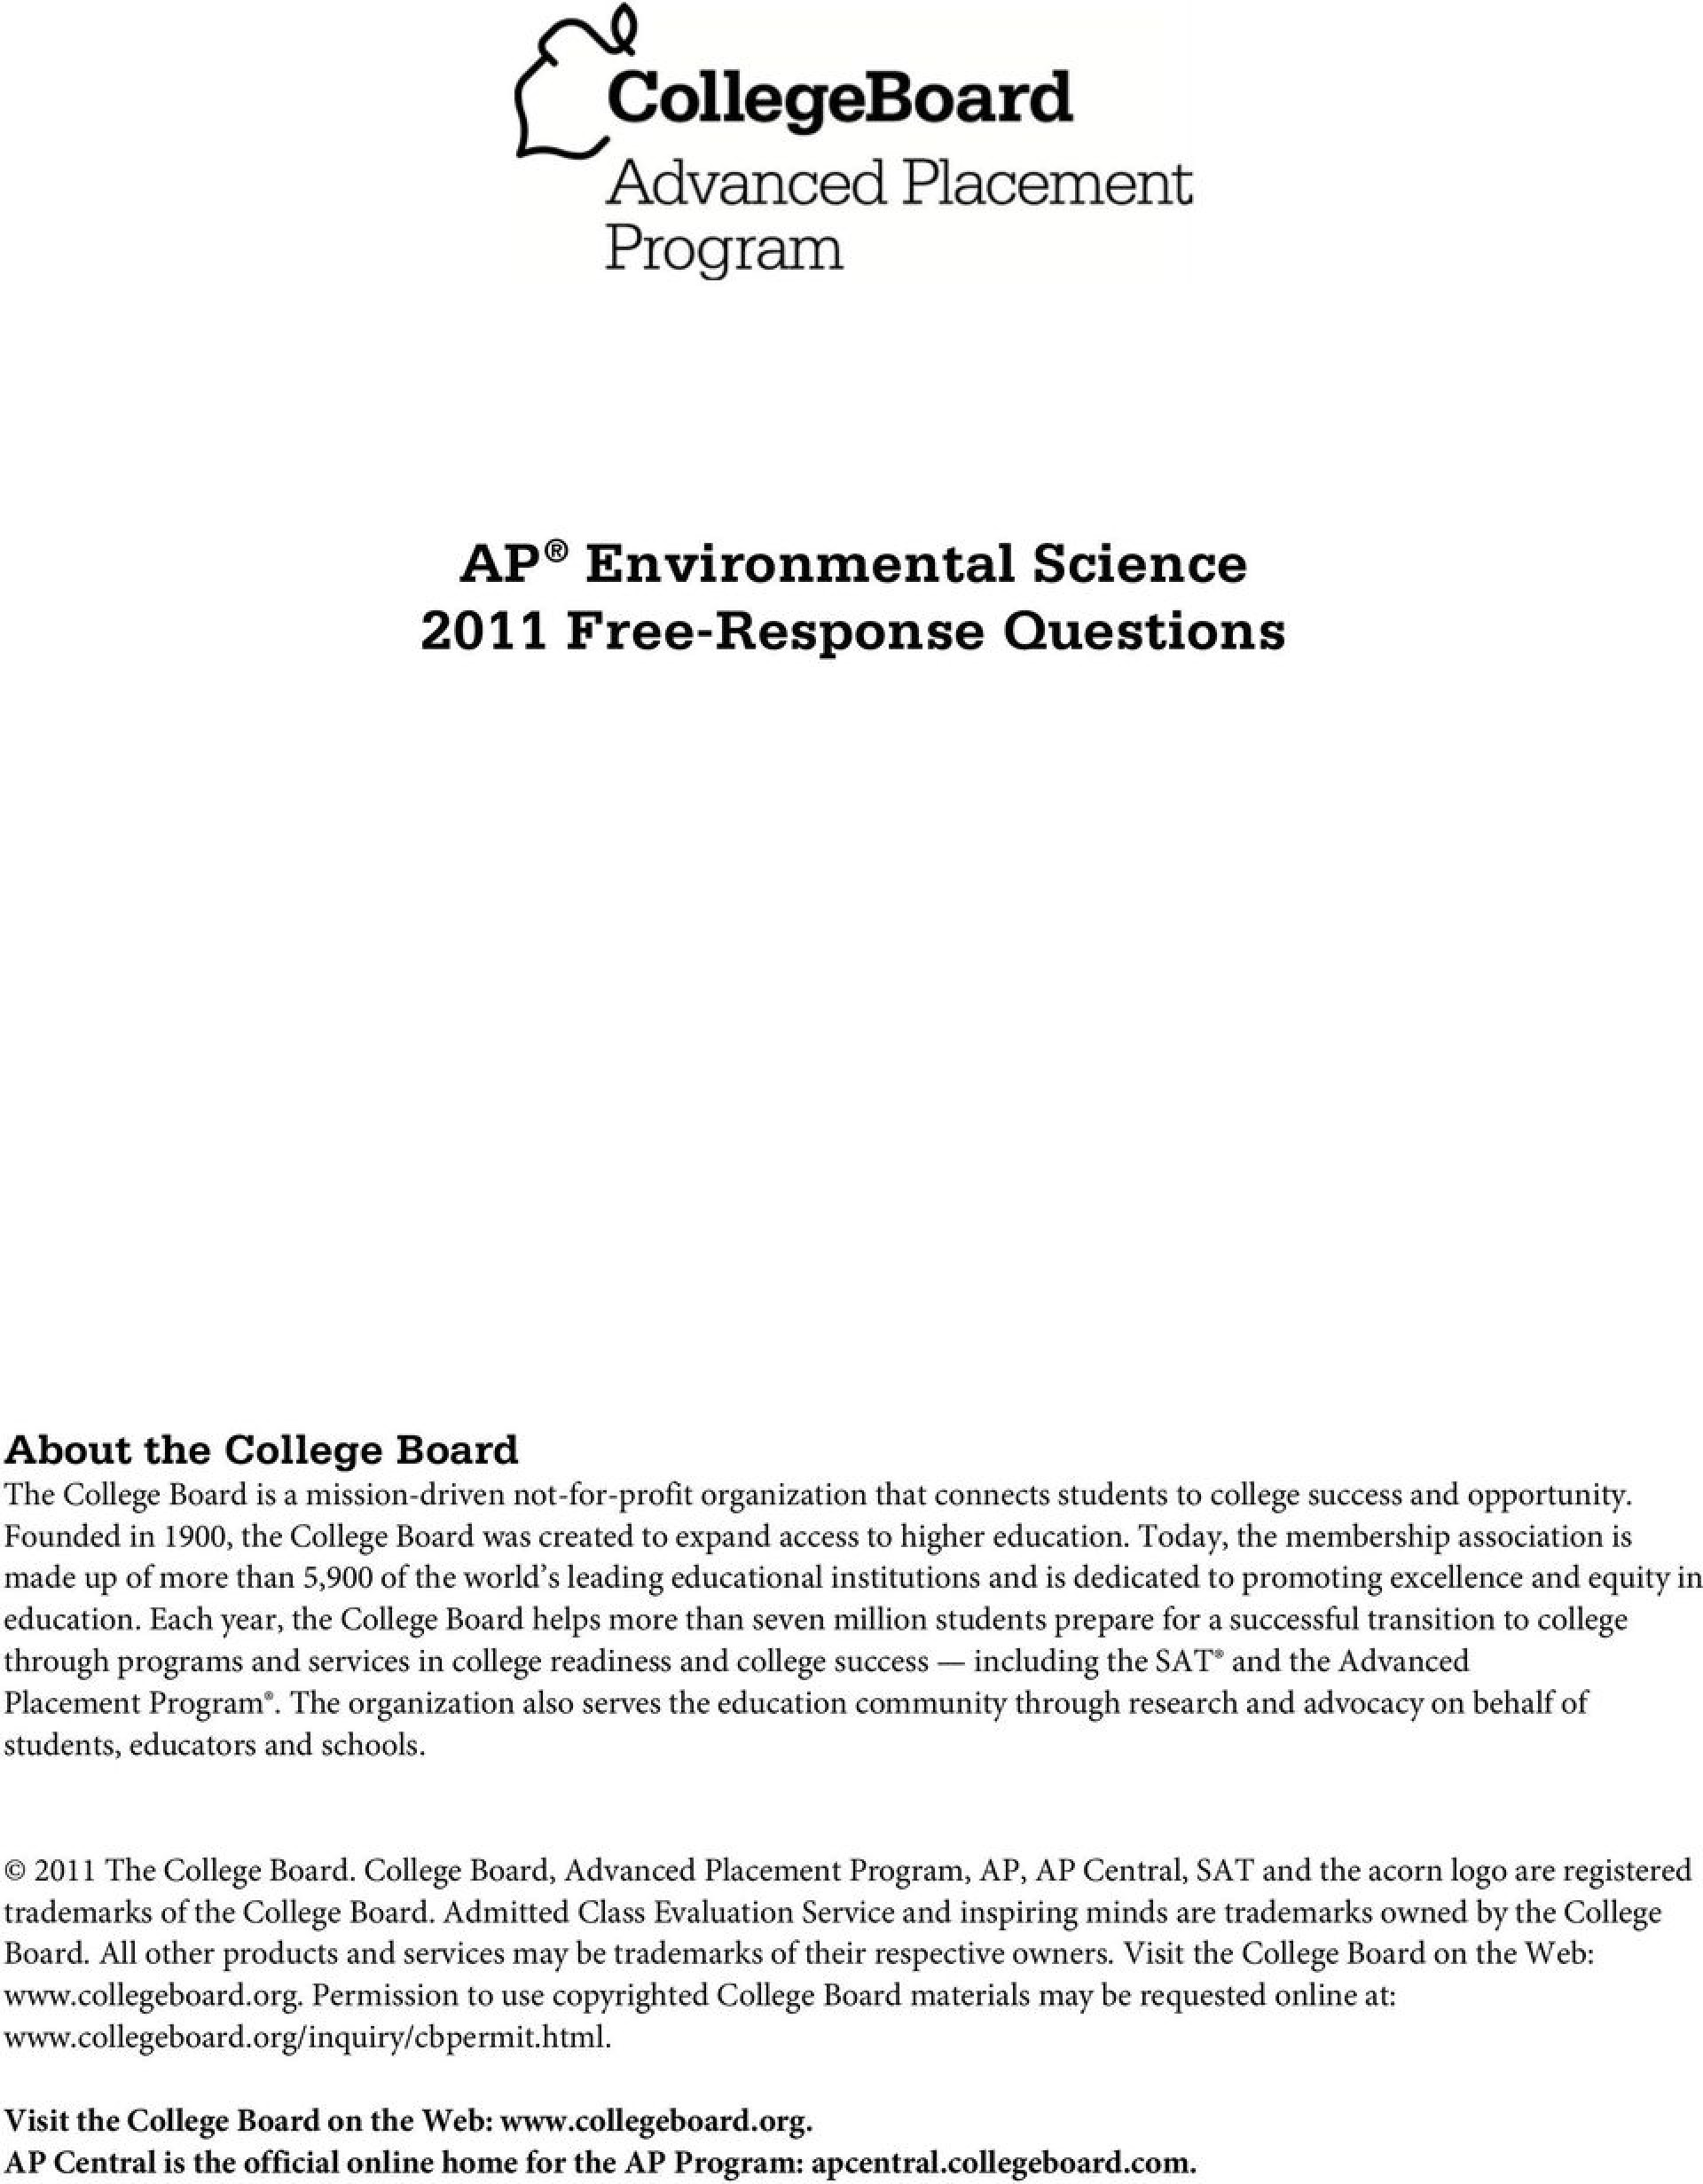 025 Research Paper Page 1 Ap Environmental Science Fearsome Topics 1920